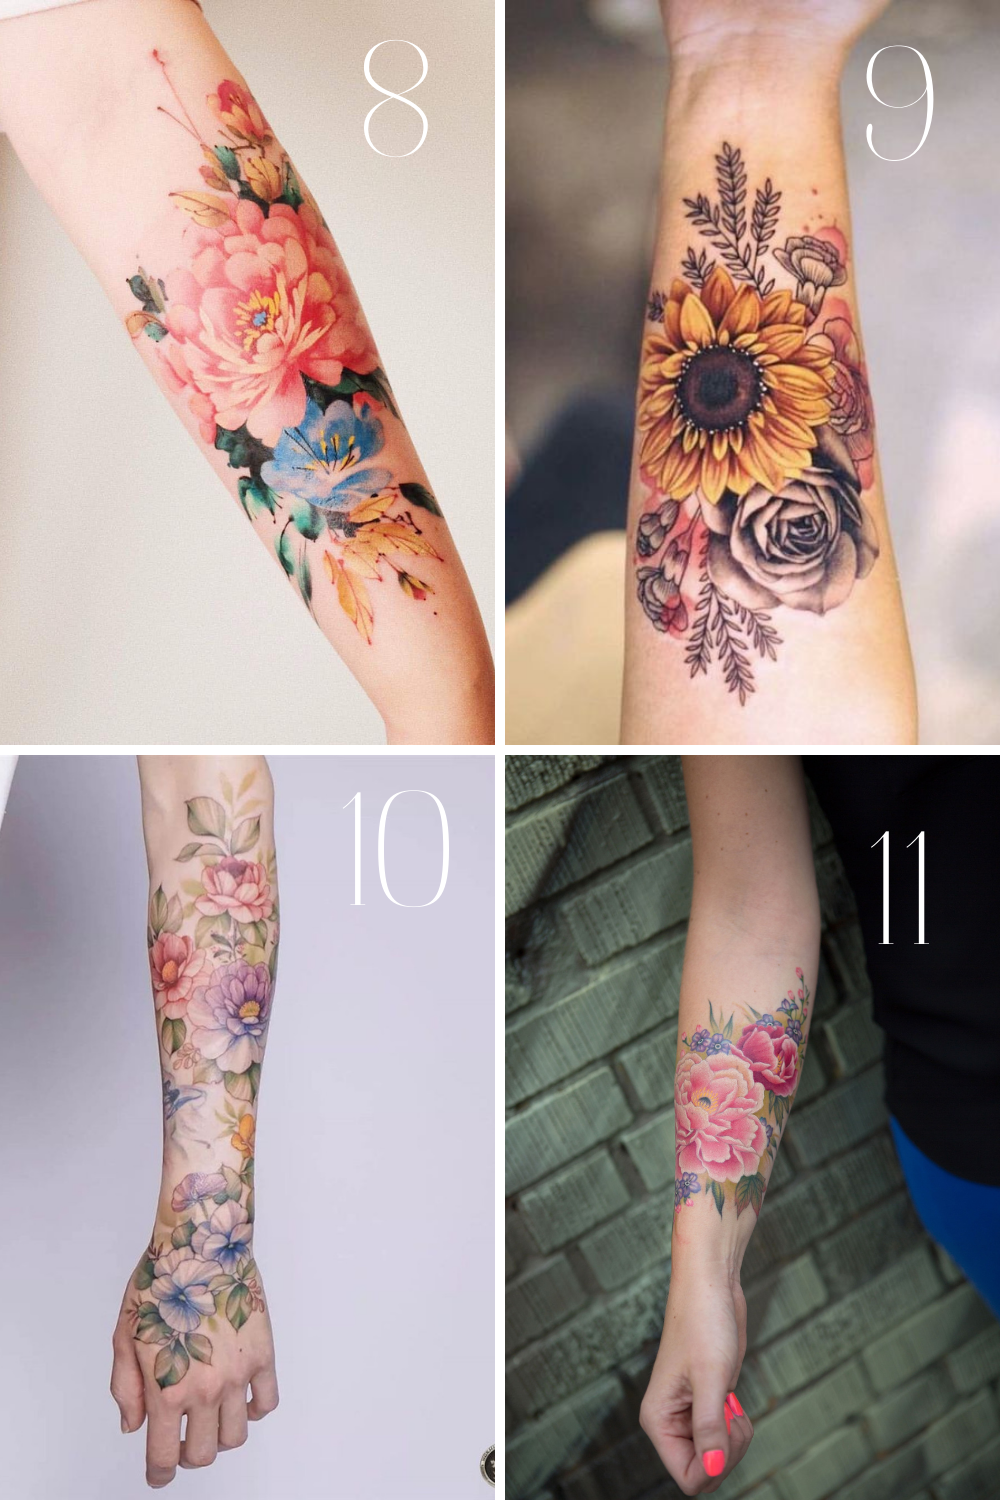 Colorful Floral Tattoo Designs For Forearms